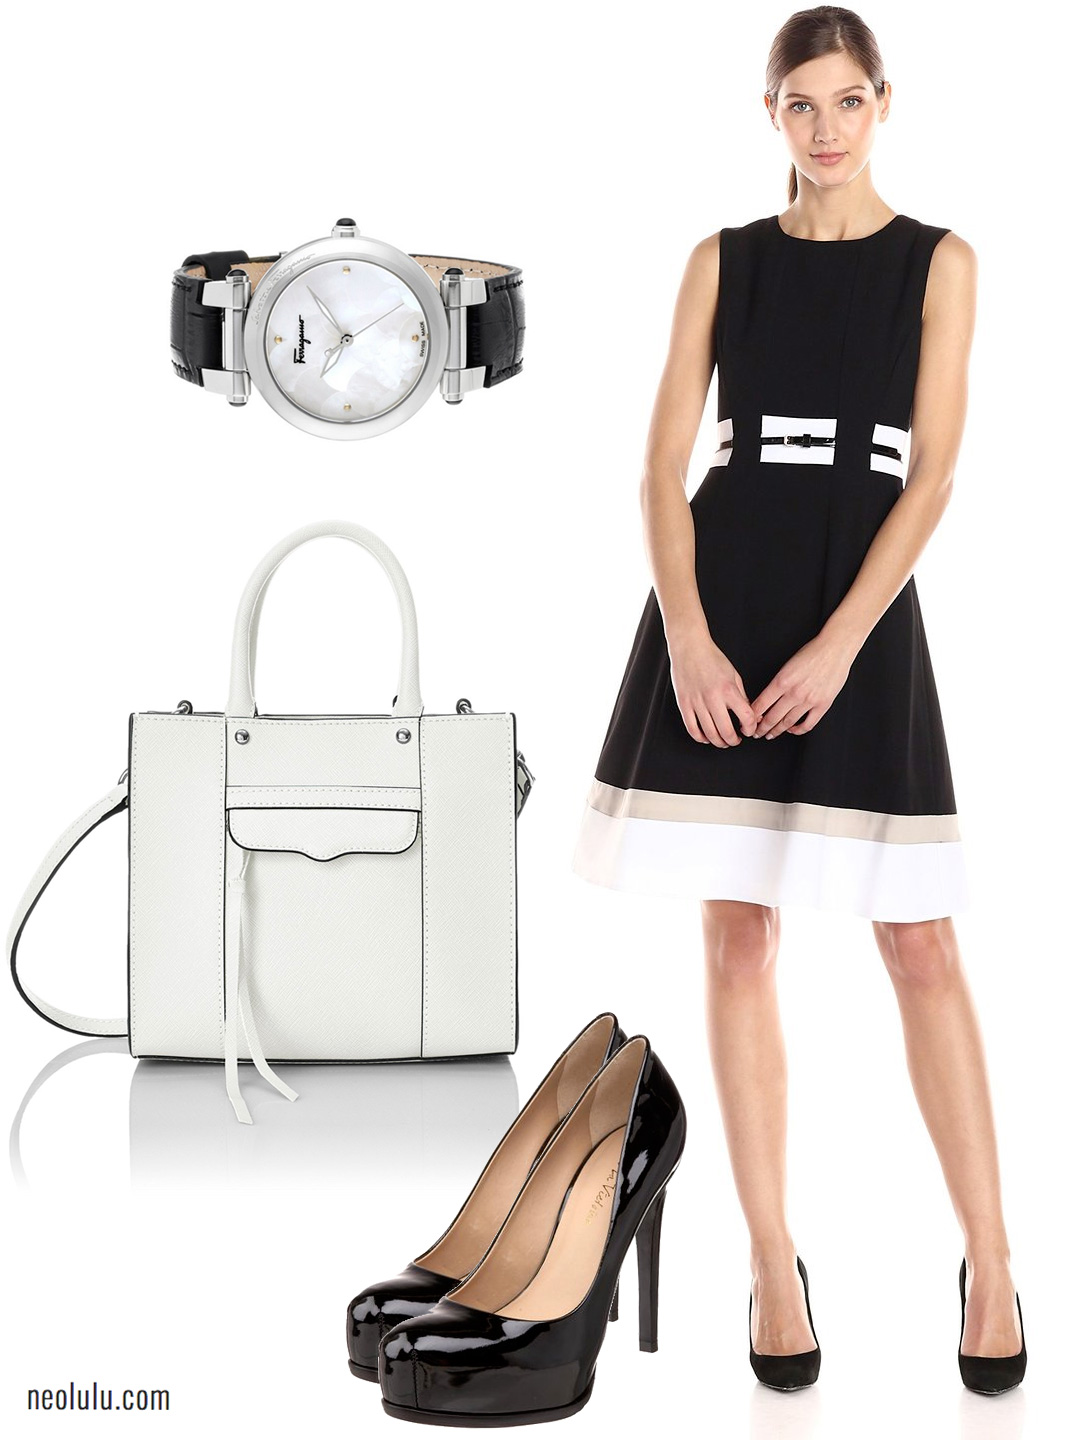 Classy in Black and White - Calvin Klein Dress and Rebecca Minkoff Tote